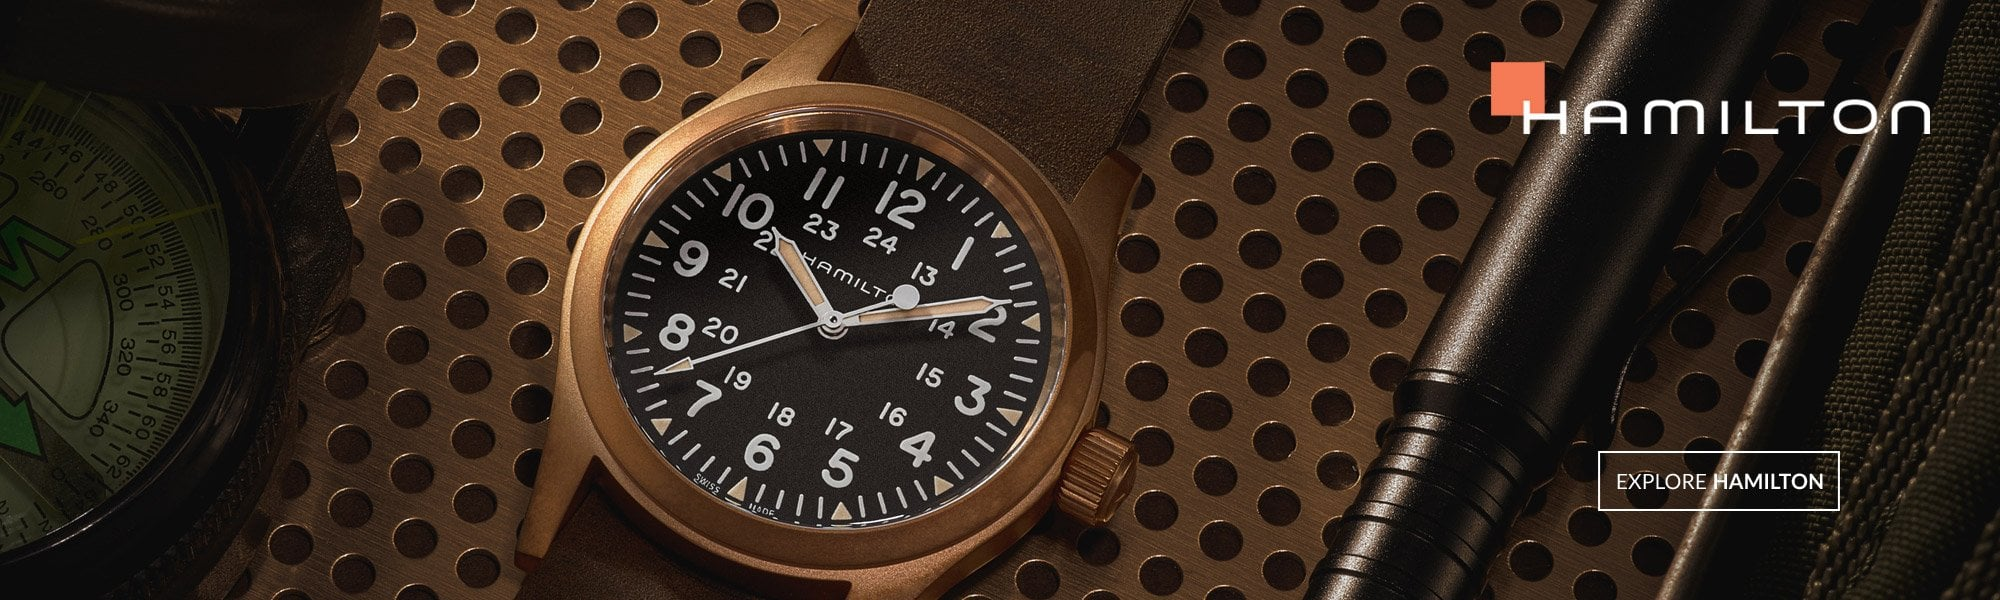 Hamilton Watches - Explore the Collections